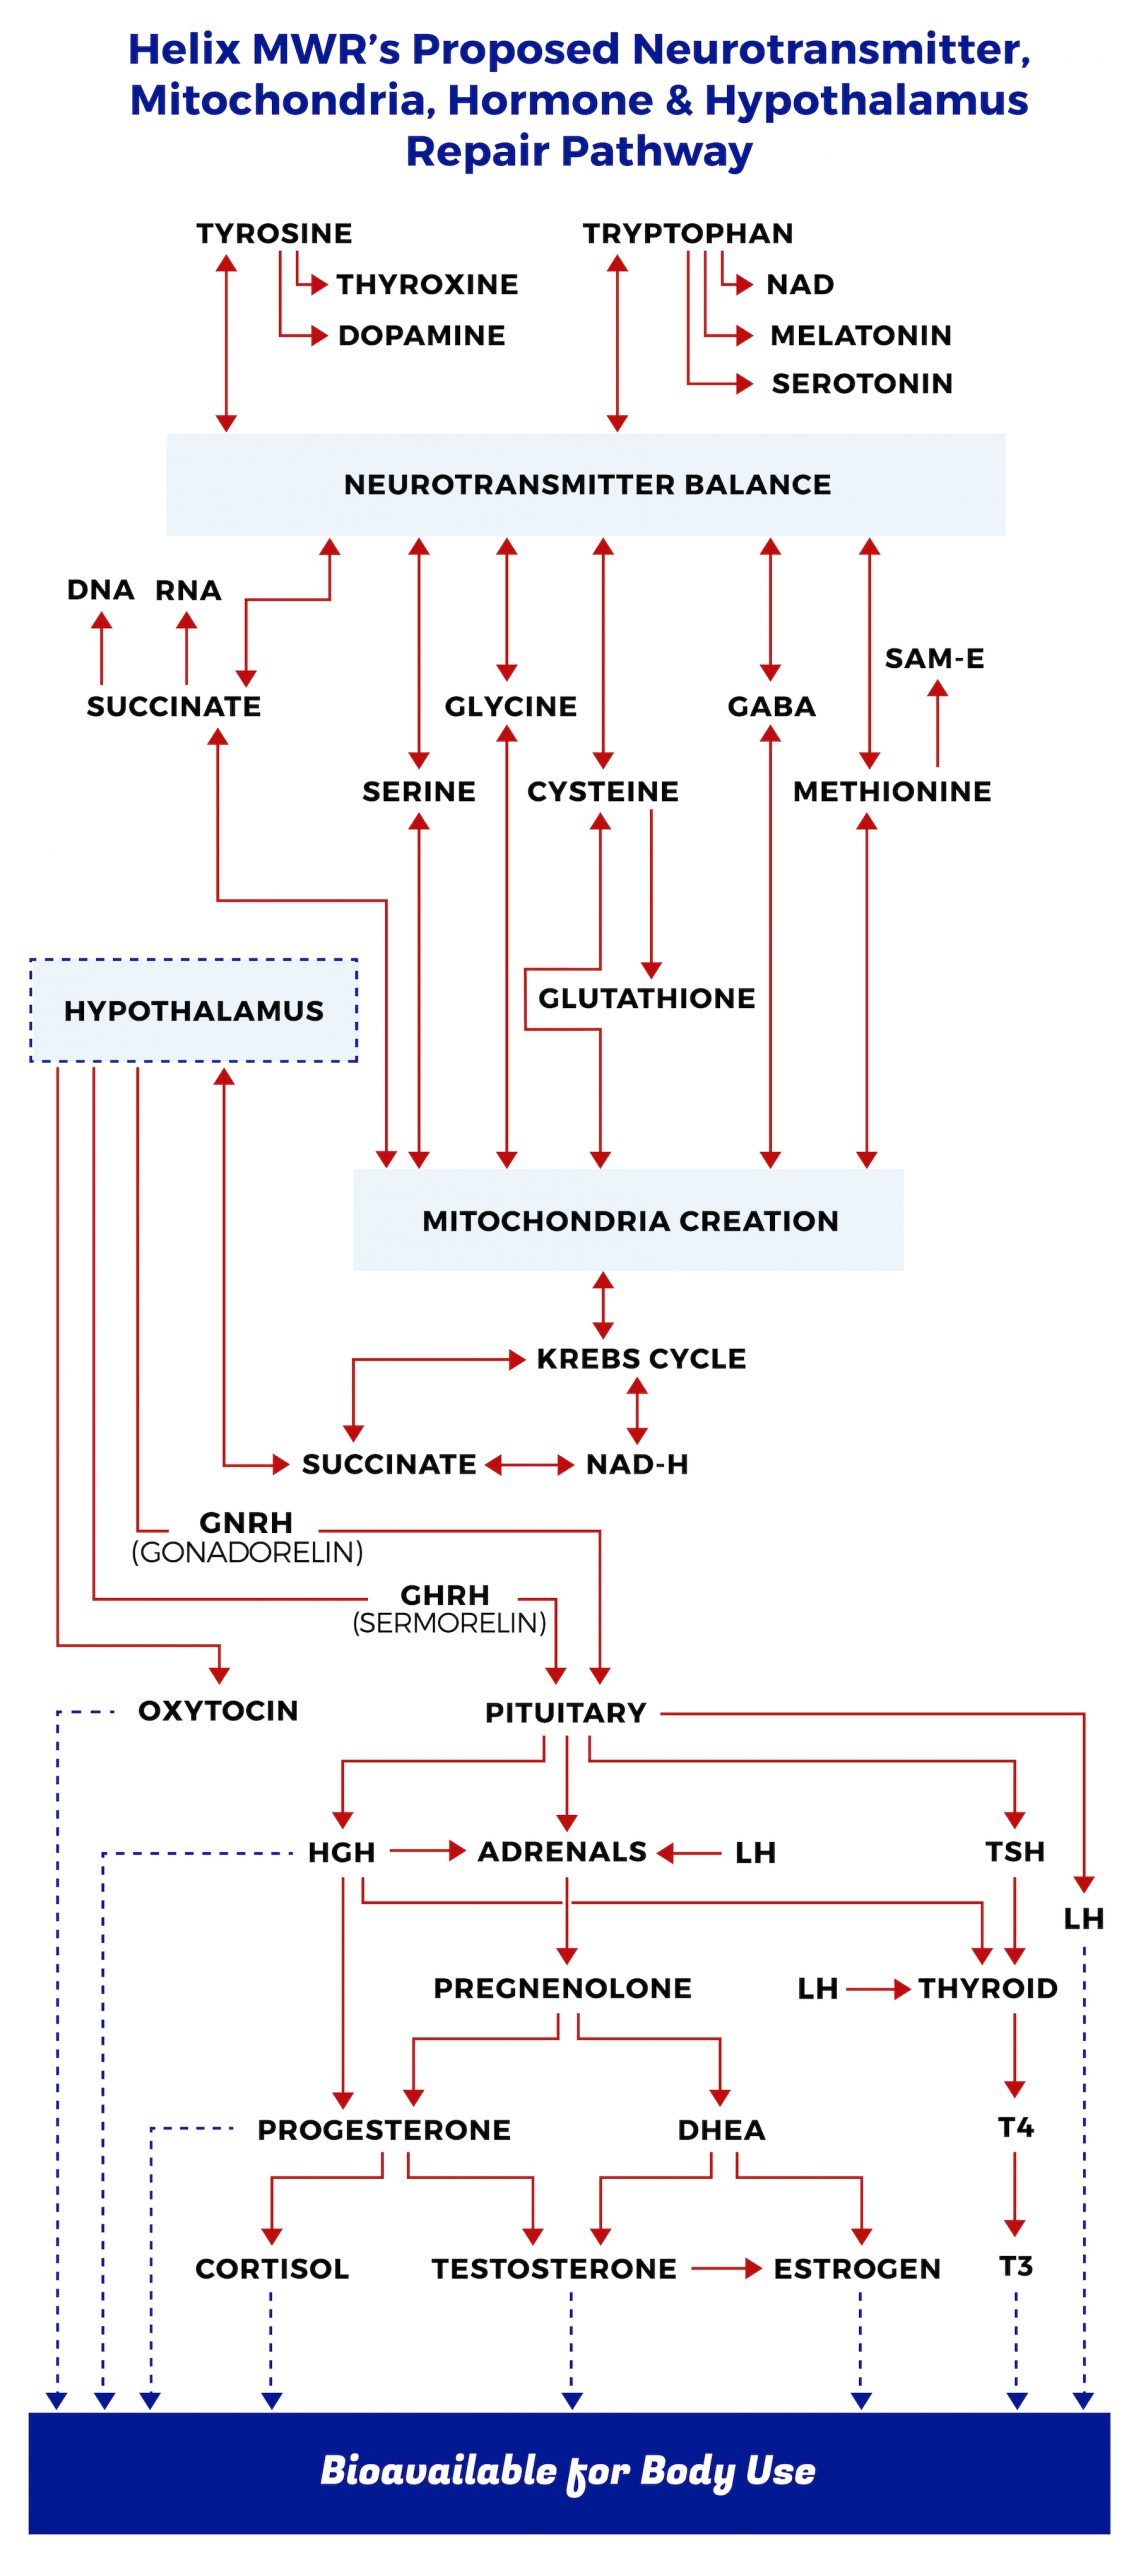 Chart illustrating Helix MWR's proposed neurotransmitter, mitochondria, hormone and hypothalamus repair pathway